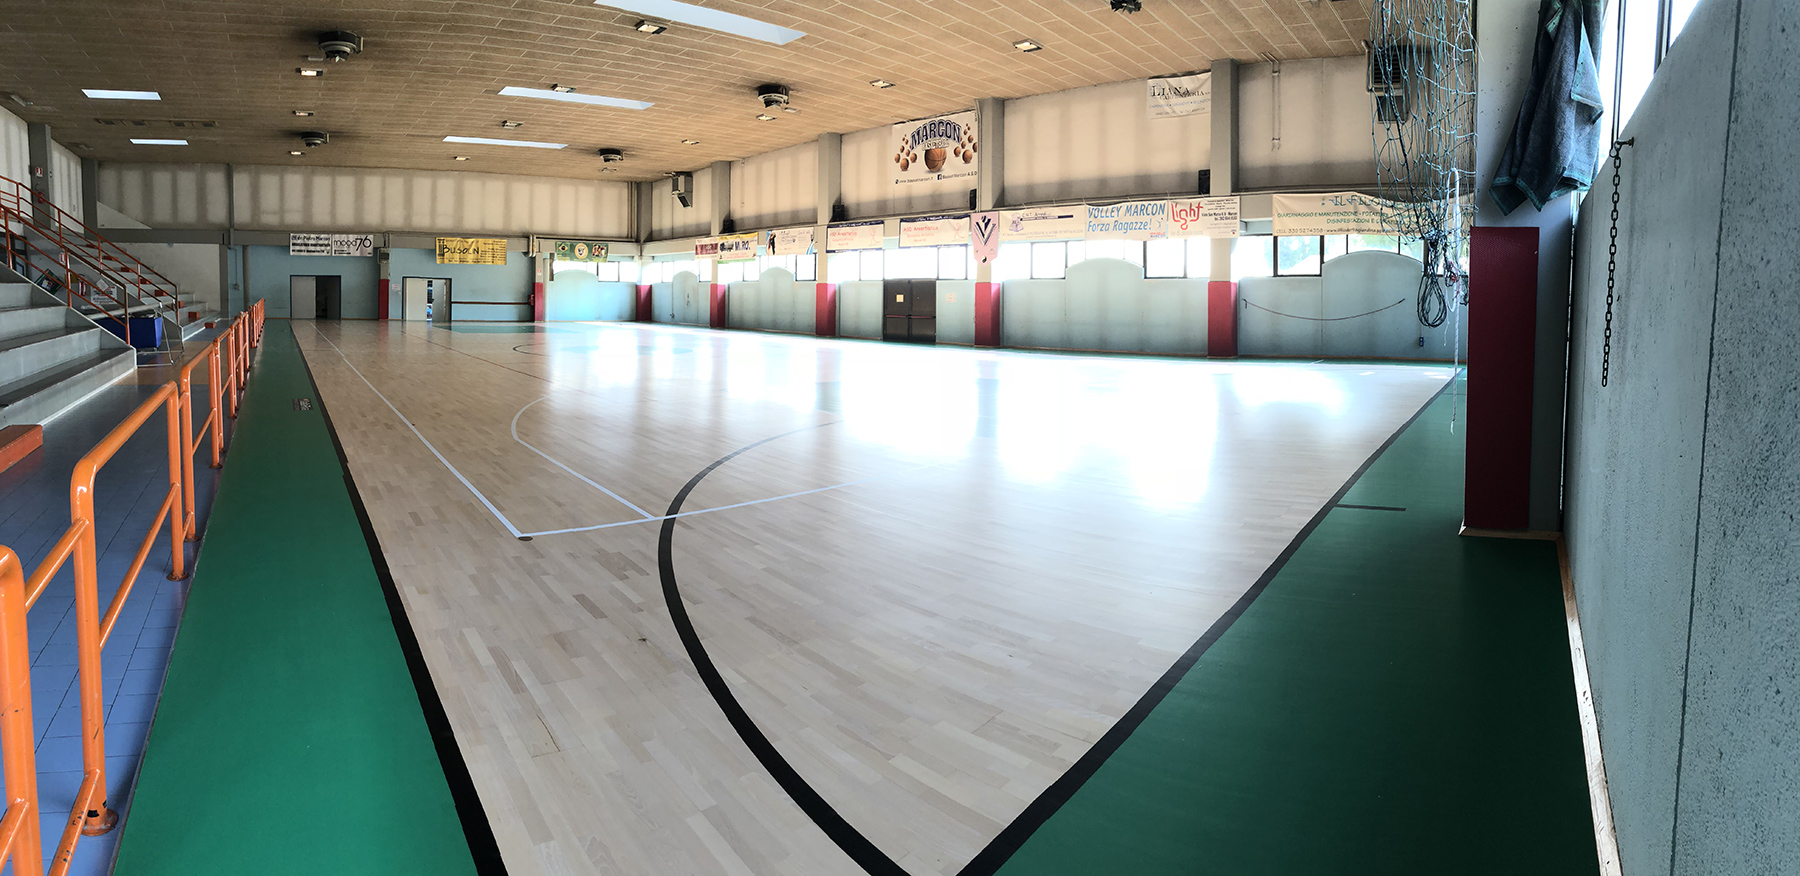 The new sports parquet for the Futsal Marcon C5